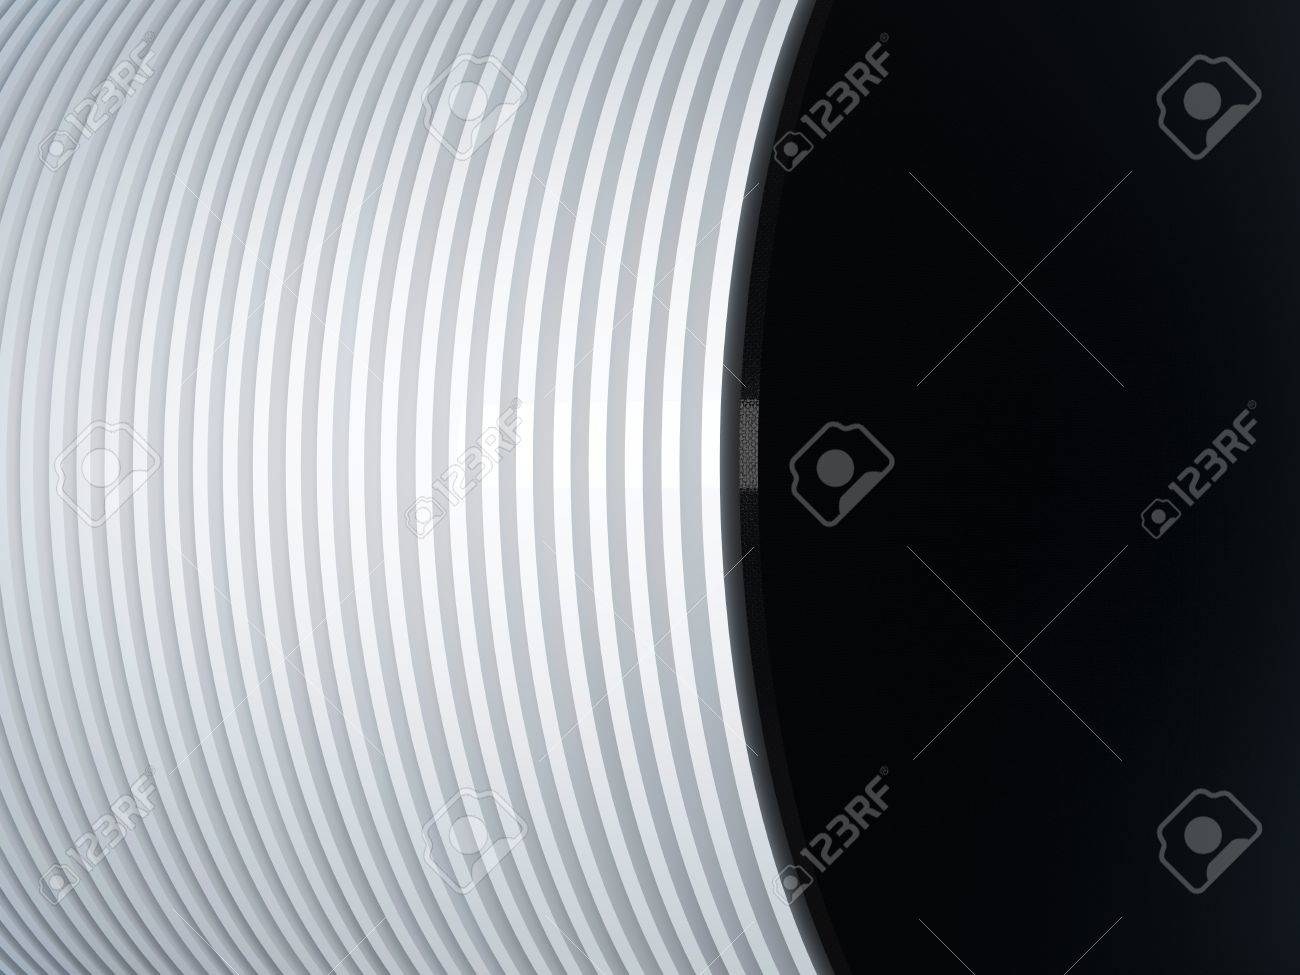 Black and white metal texture. Abstract gradient background. Stock Photo - 15447251